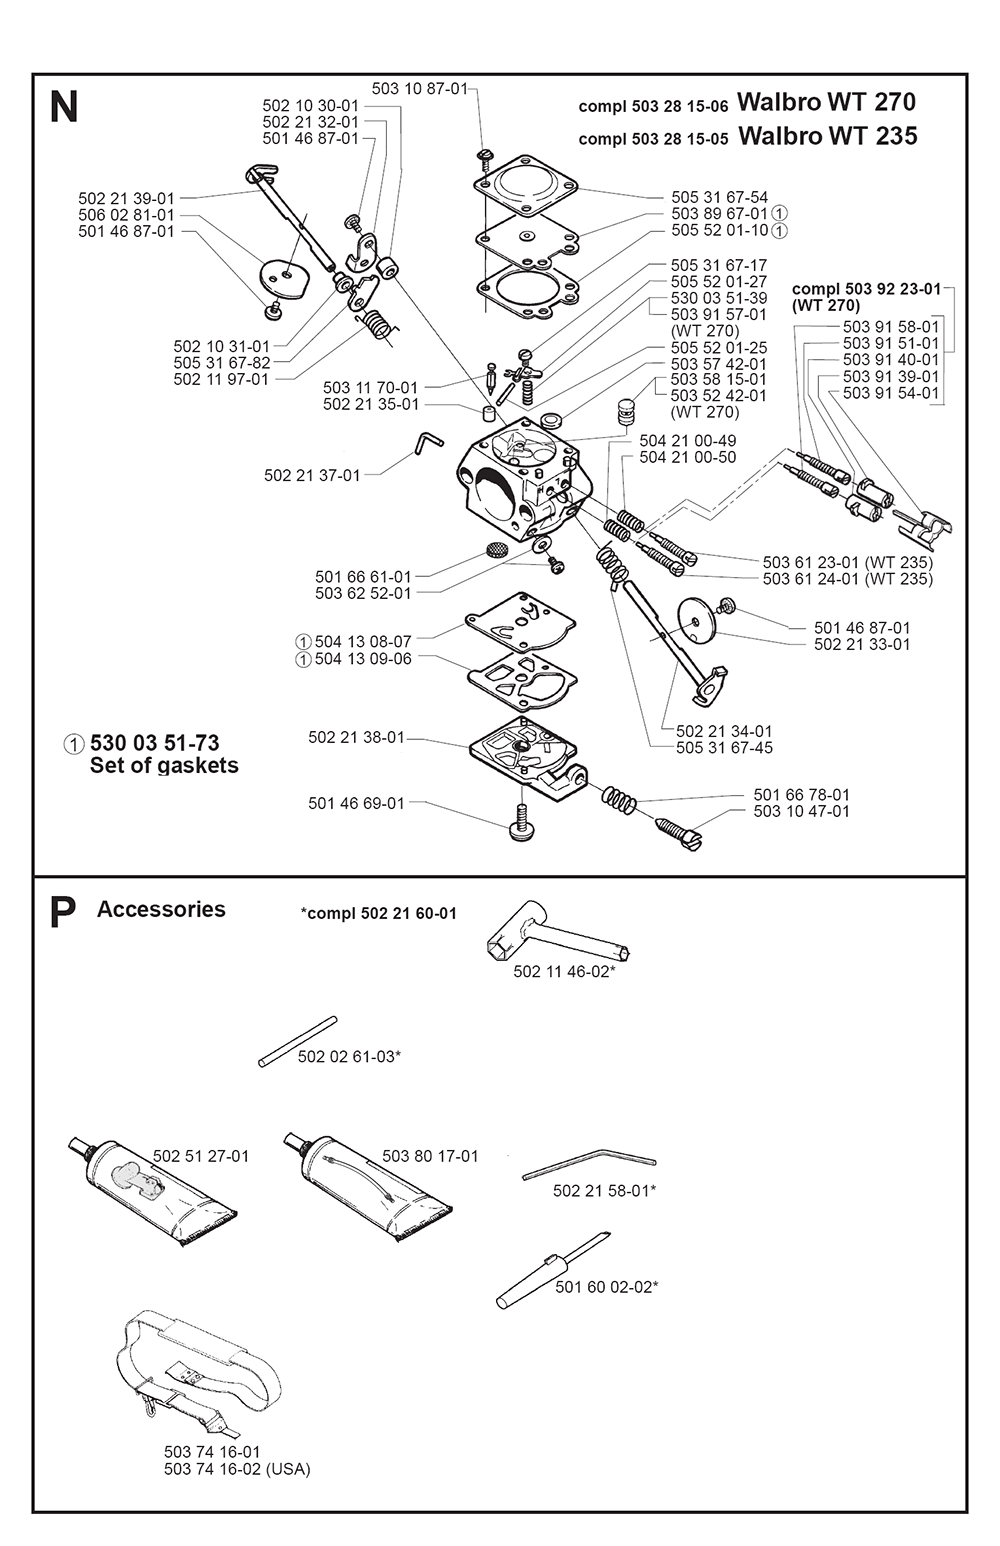 225 E-(I9700012)-Husqvarna-PB-4Break Down